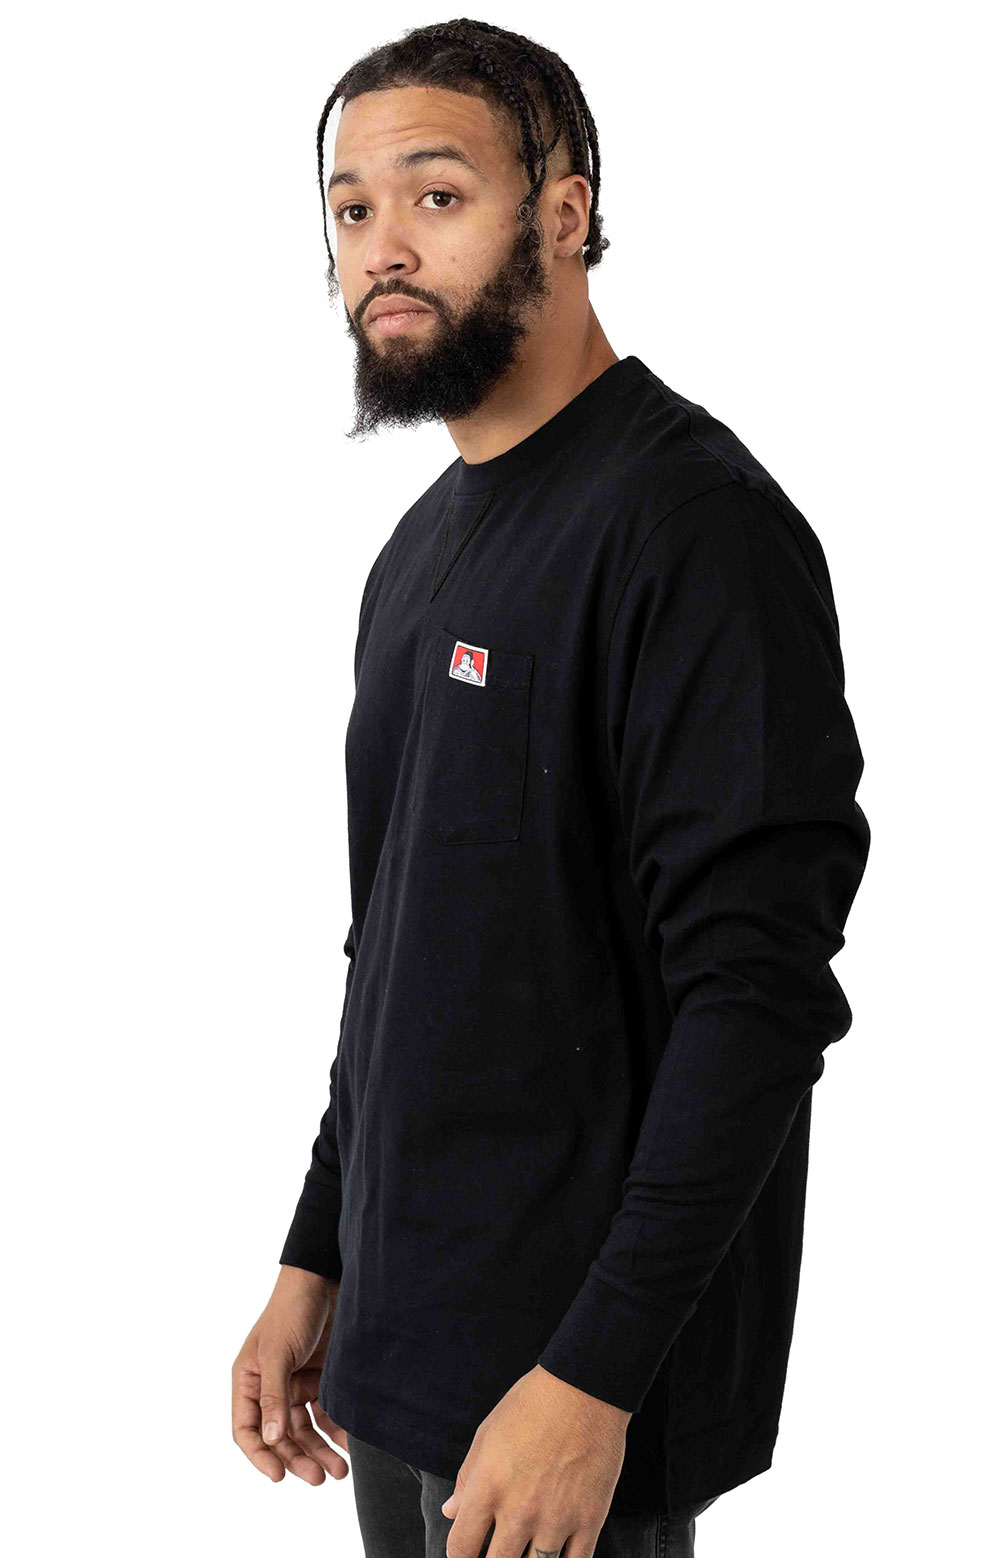 Heavy Duty L/S Pocket Shirt - Black  2